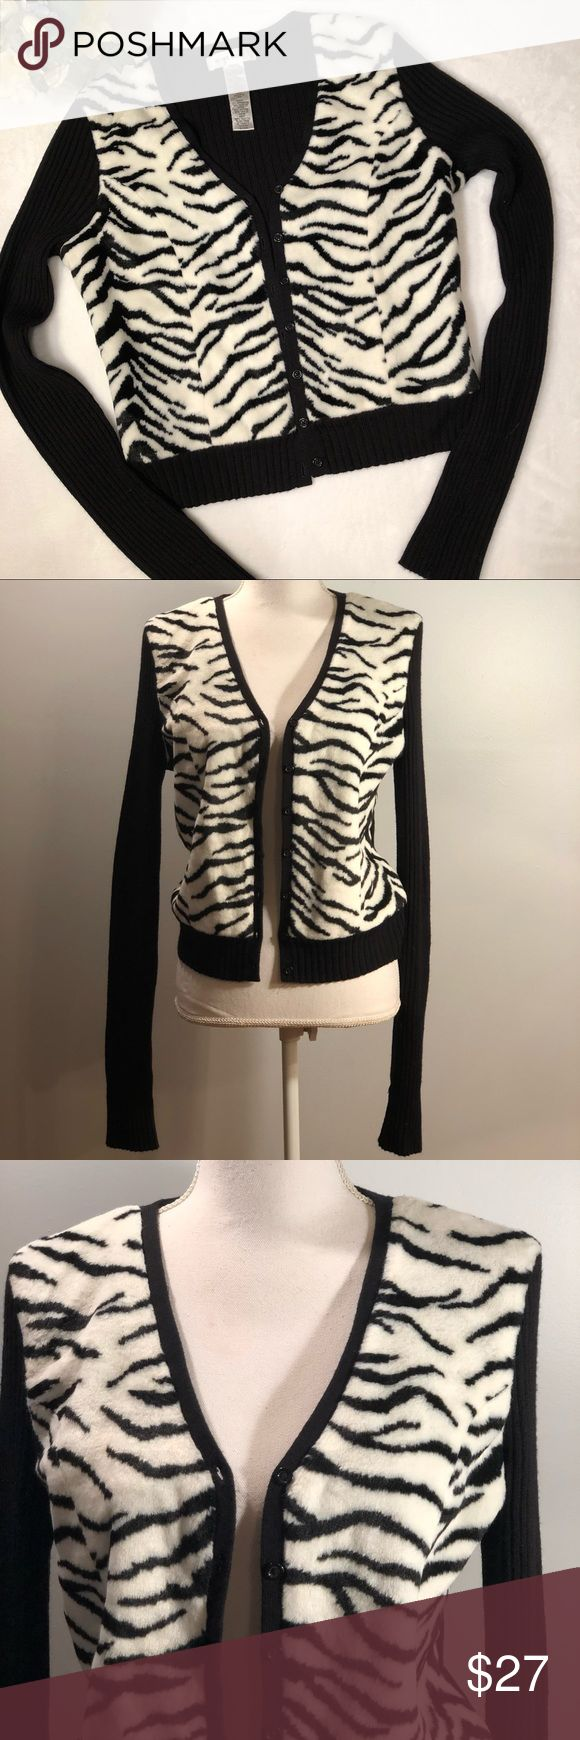 """Nine West Zebra Print Fur Panel Button Up Cardigan Nine West Zebra Print Fur Panel Button Up Caridgan. Black and white zebra print fur panels on front. Ribbed, black stretchy material. V neckline. Full button up cardigan. Long sleeves. Size large. EUC, excellent used condition. No flaws. Measurements taken laid flat. 15"""" shoulder width, 19.5"""" bust, 22"""" length. Nine West Sweaters Cardigans"""